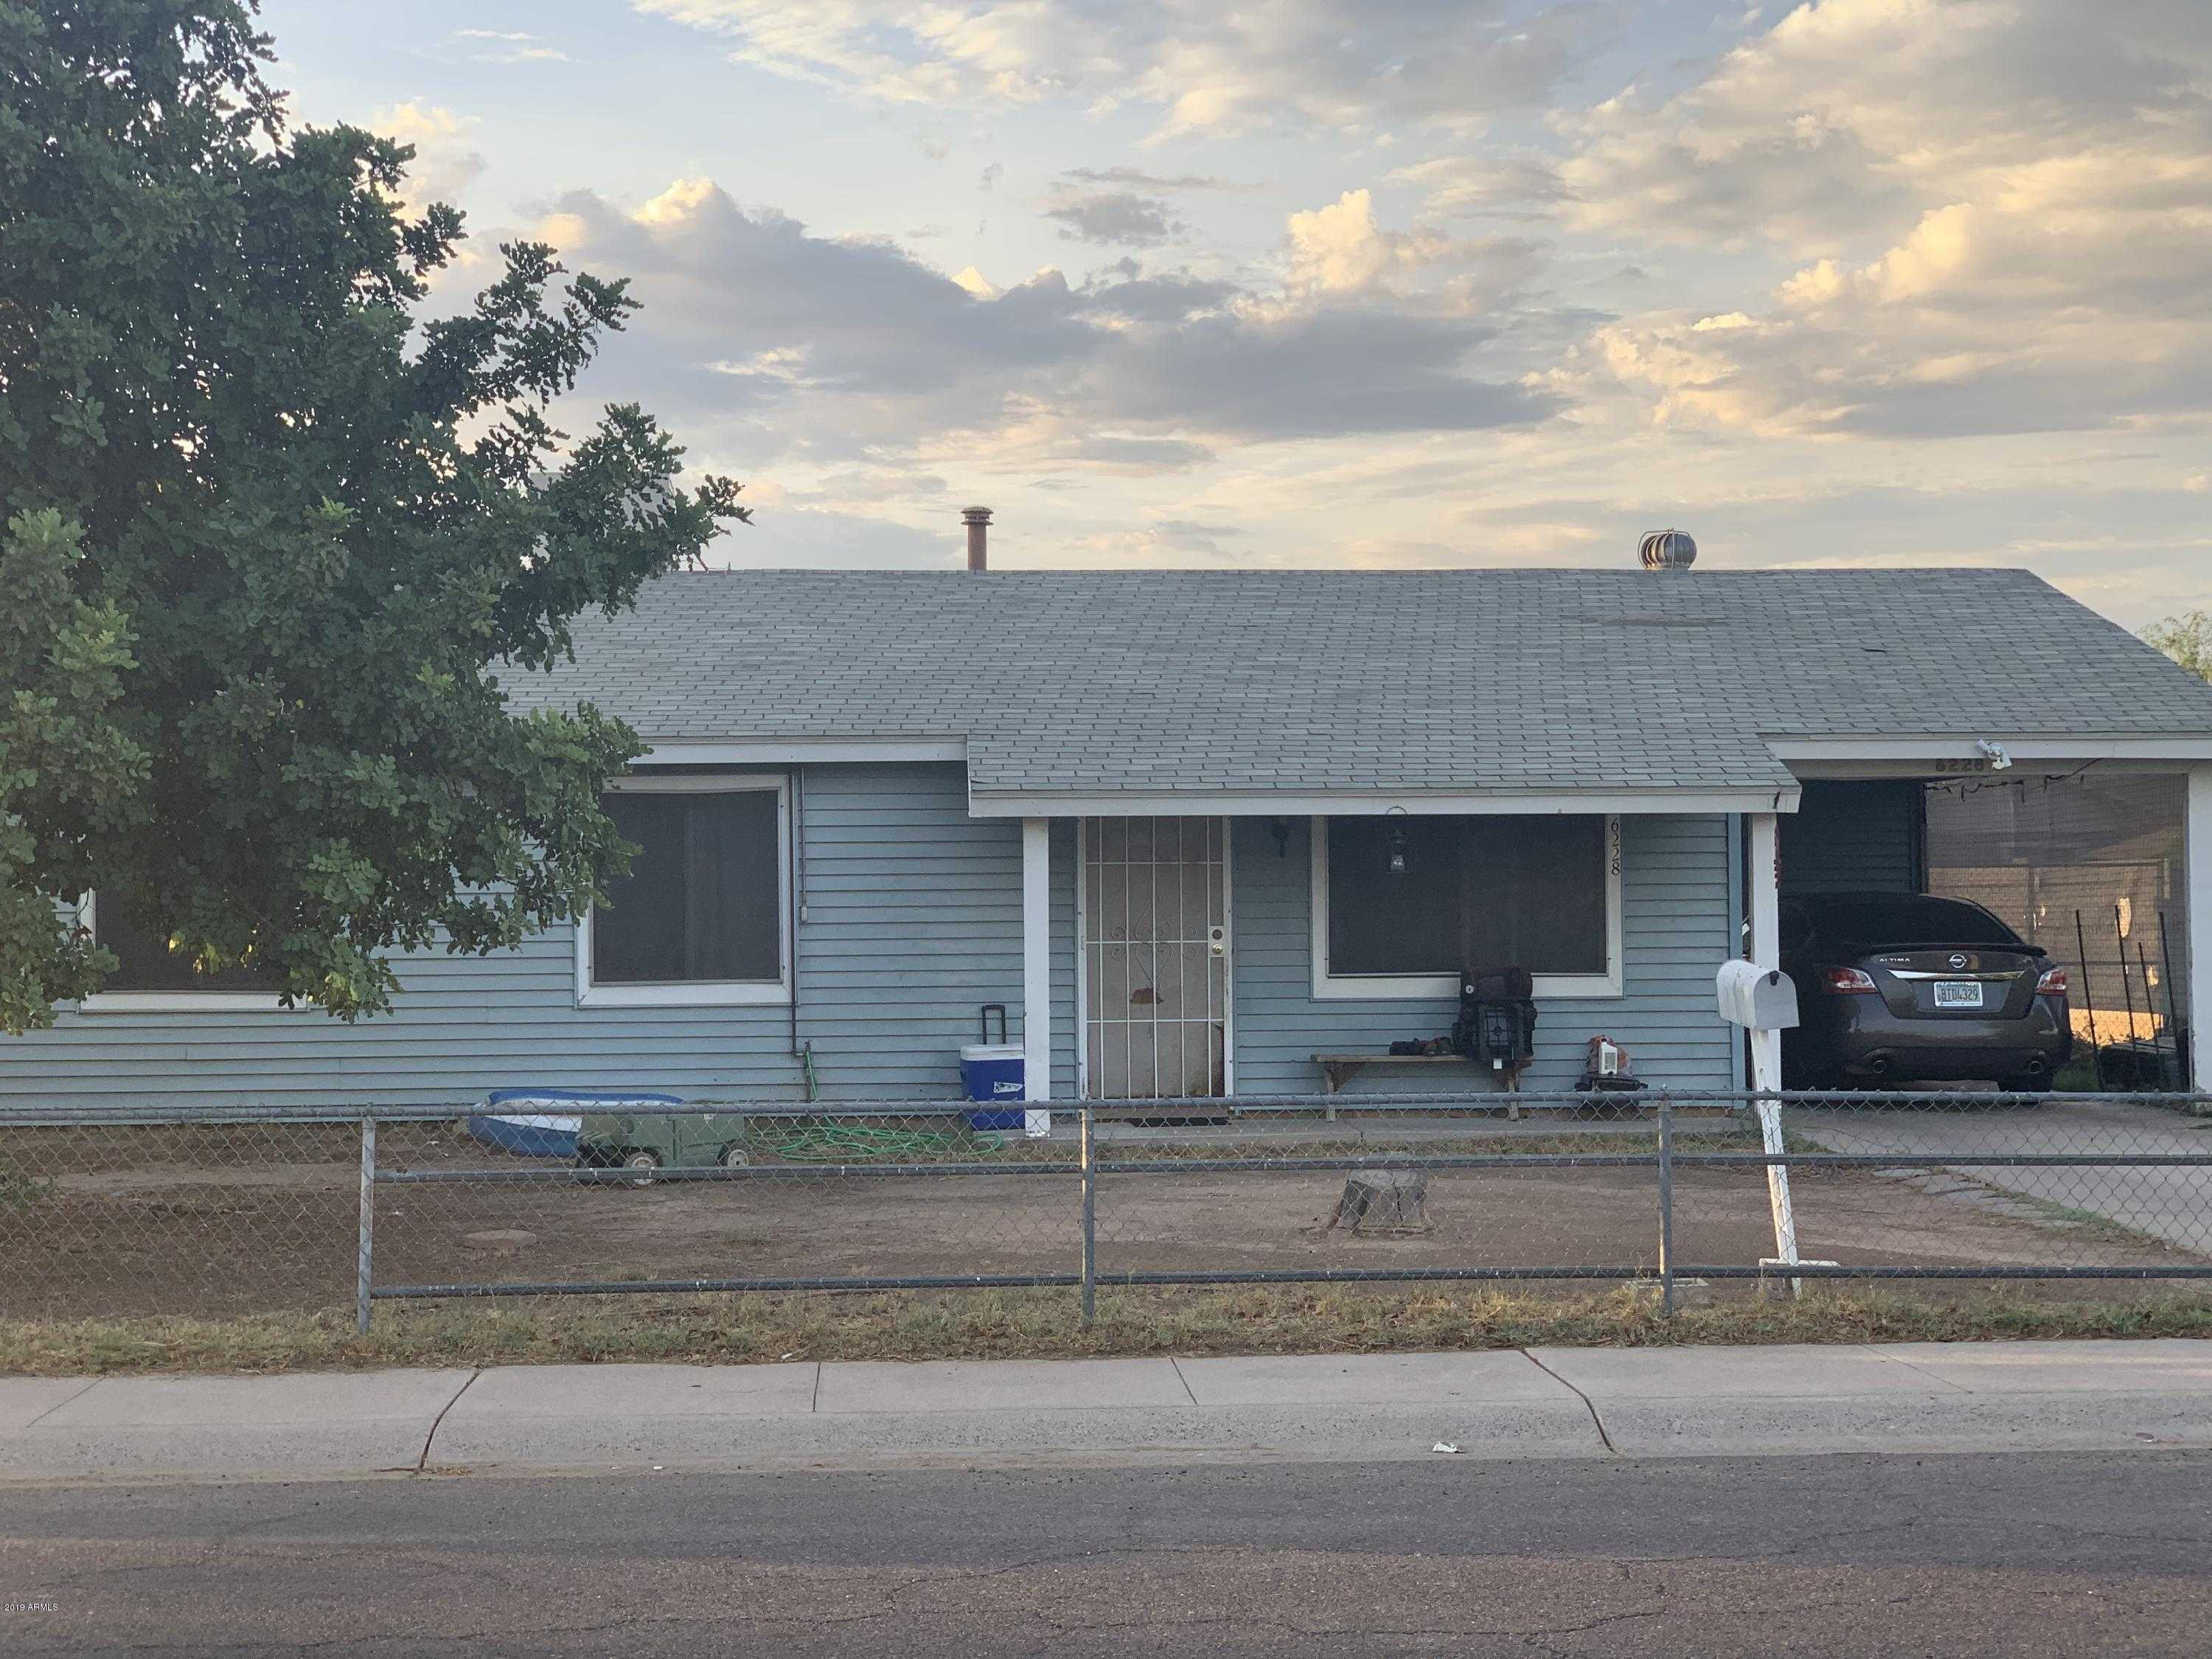 $200,000 - 3Br/2Ba - Home for Sale in Maryvale Terrace 45, Phoenix